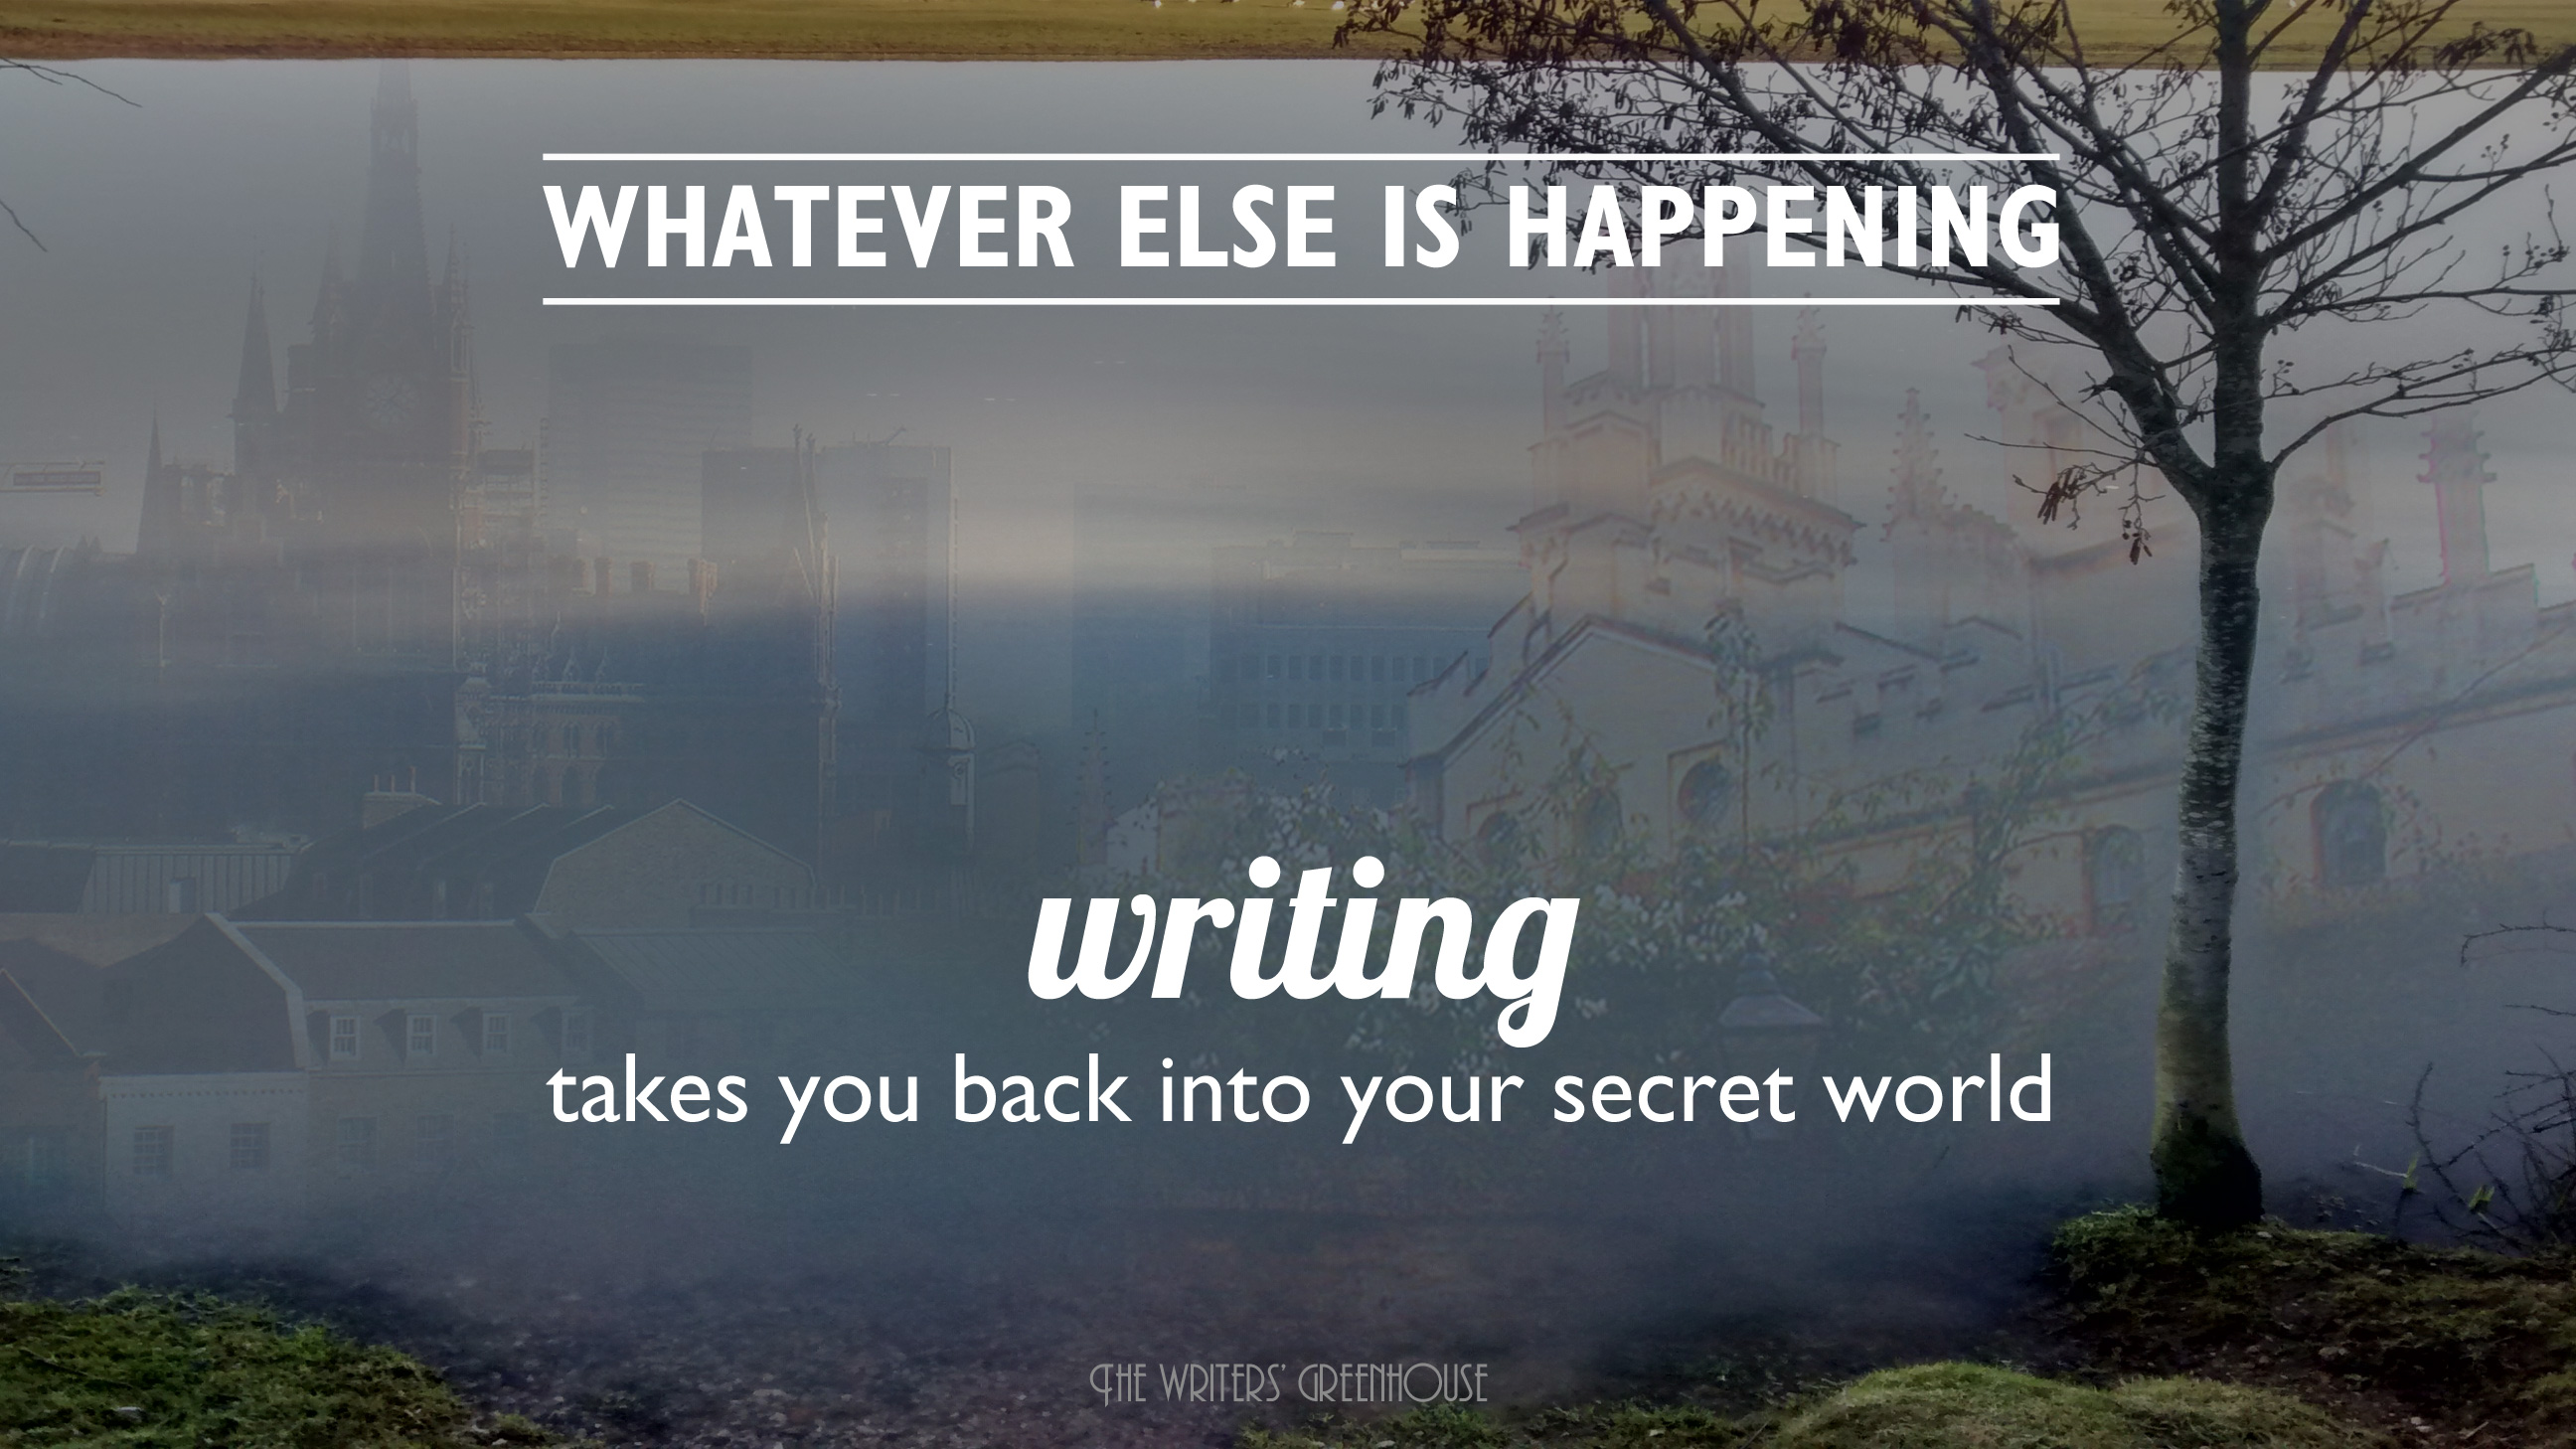 Whatever else is happening, writing takes you back into your secret world